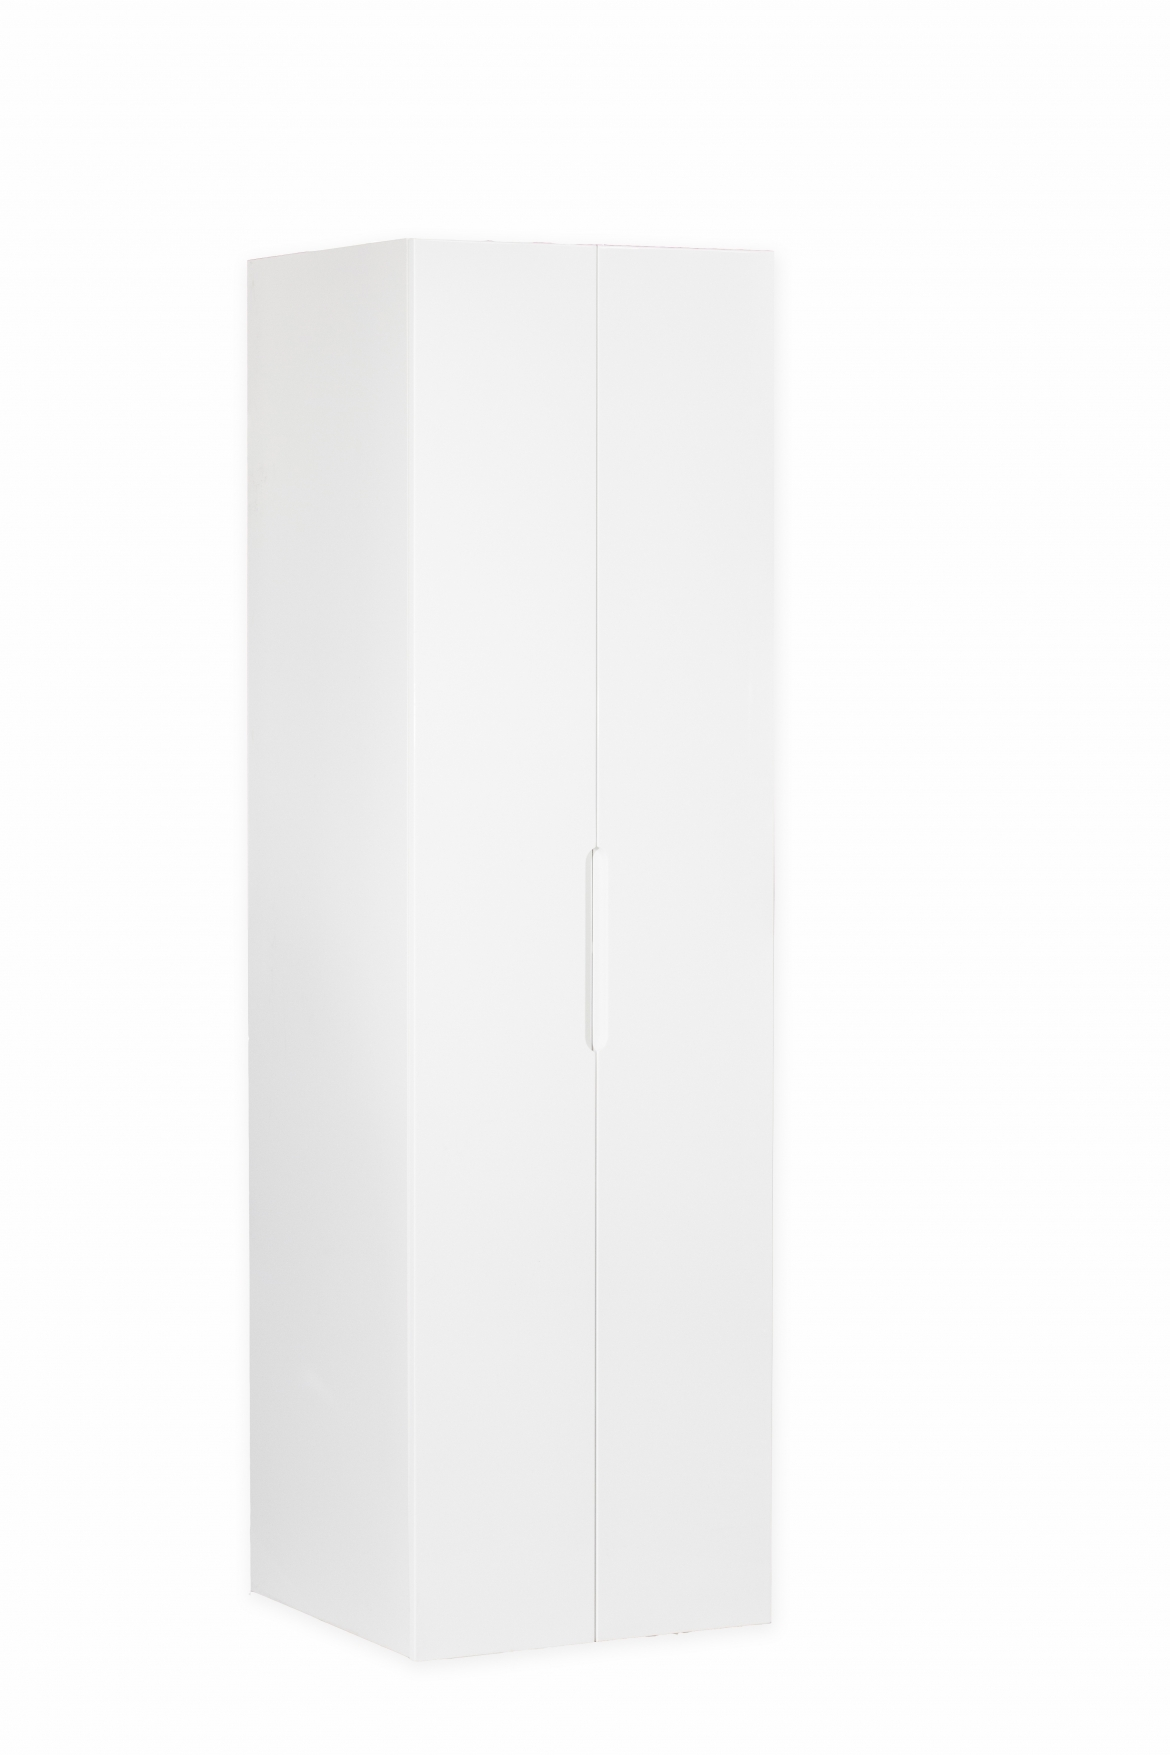 900 mm kitchen pantry cabinet with 2 pac gloss white doors